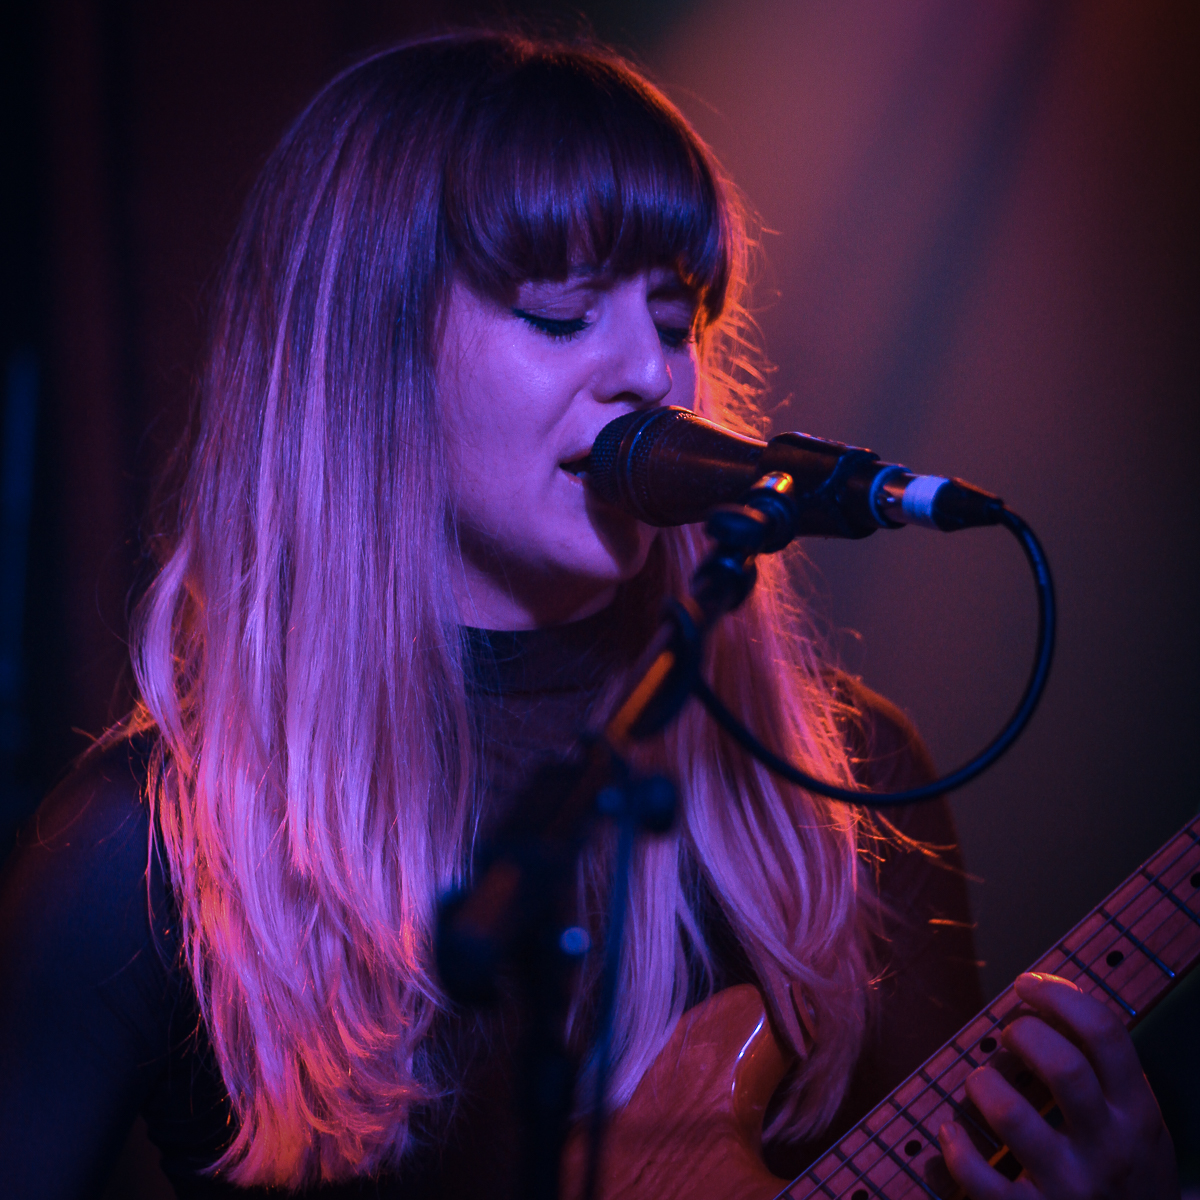 Thyla playing BLOGTOBER at The Finsbury in London on 14.10.17